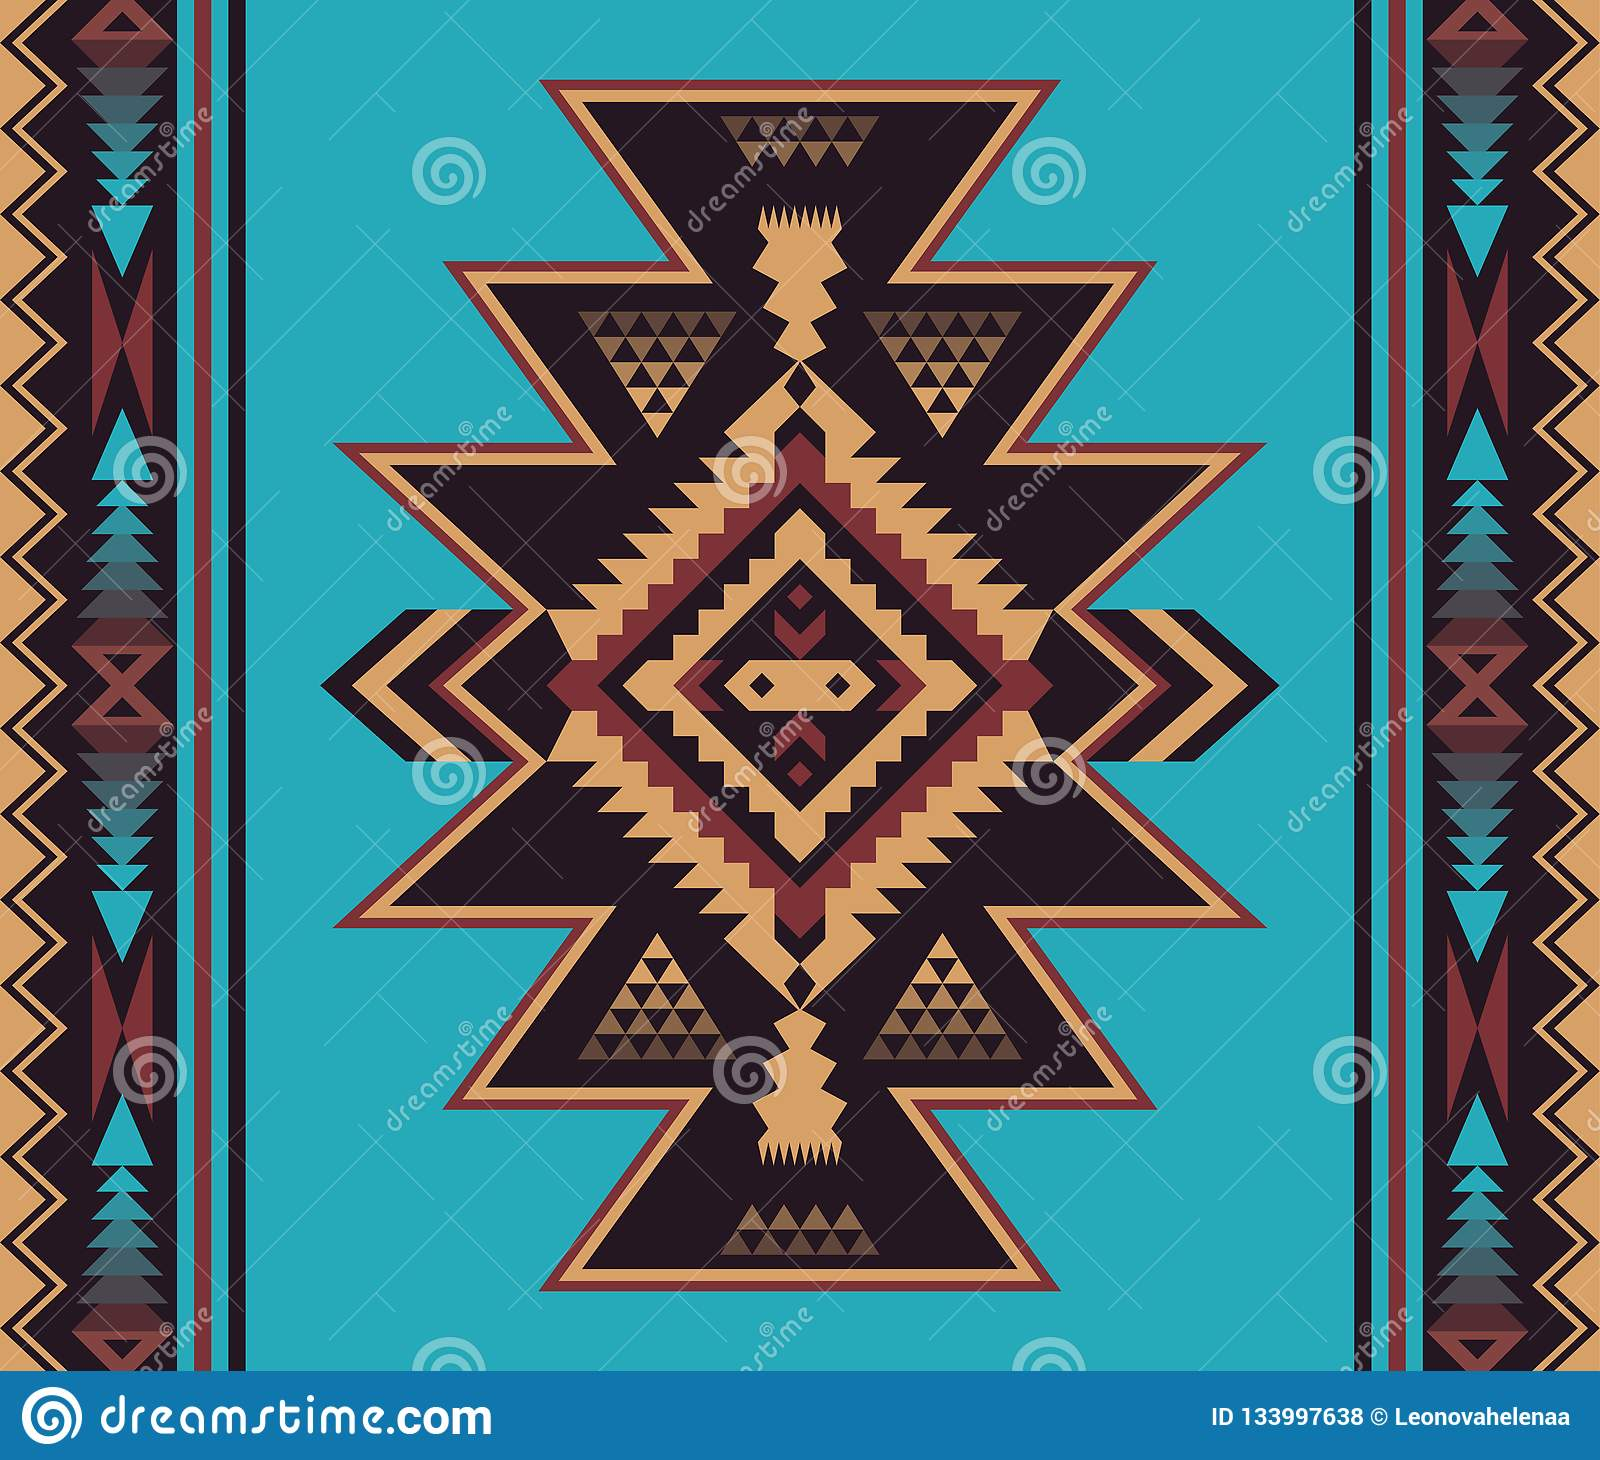 picture regarding Native American Designs Printable identify Indigenous Southwest American, Indian, Aztec, Navajo Seamless